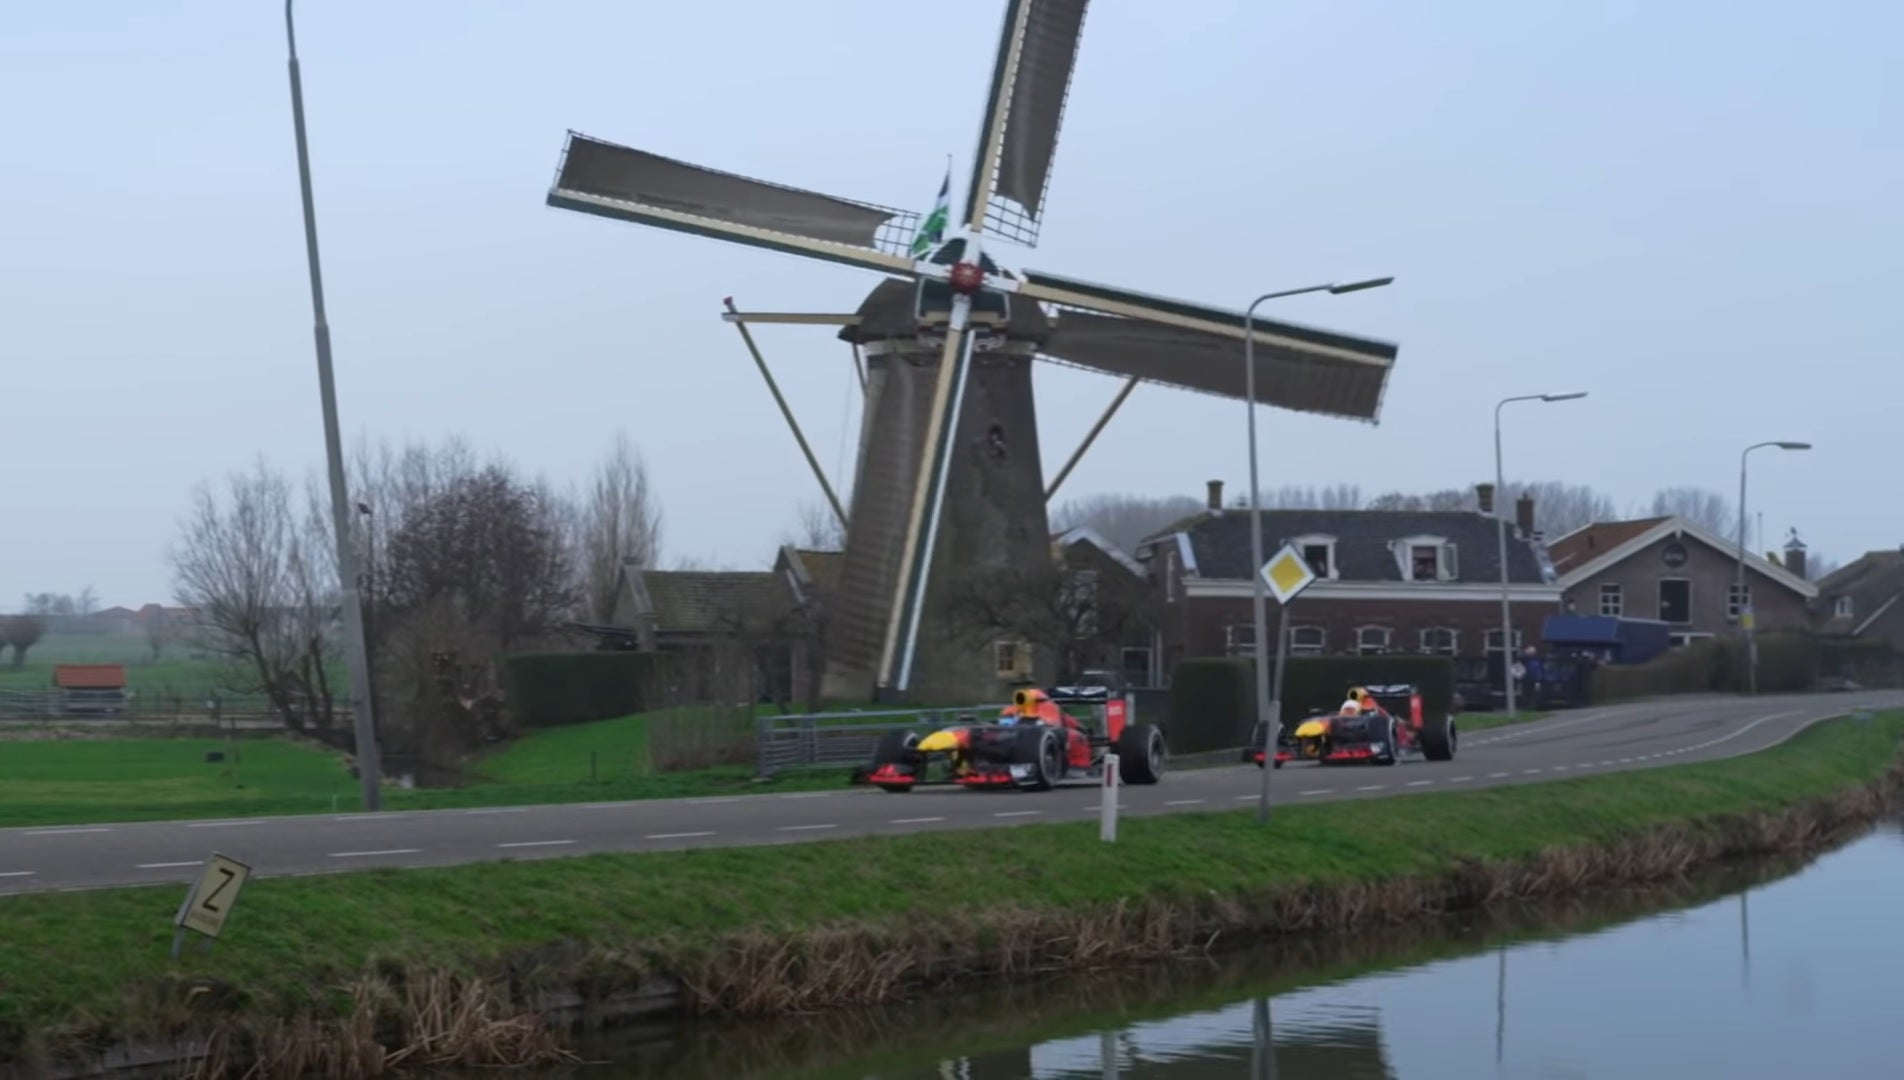 Watch Red Bull's F1 Drivers Take A Tour Of The Netherlands